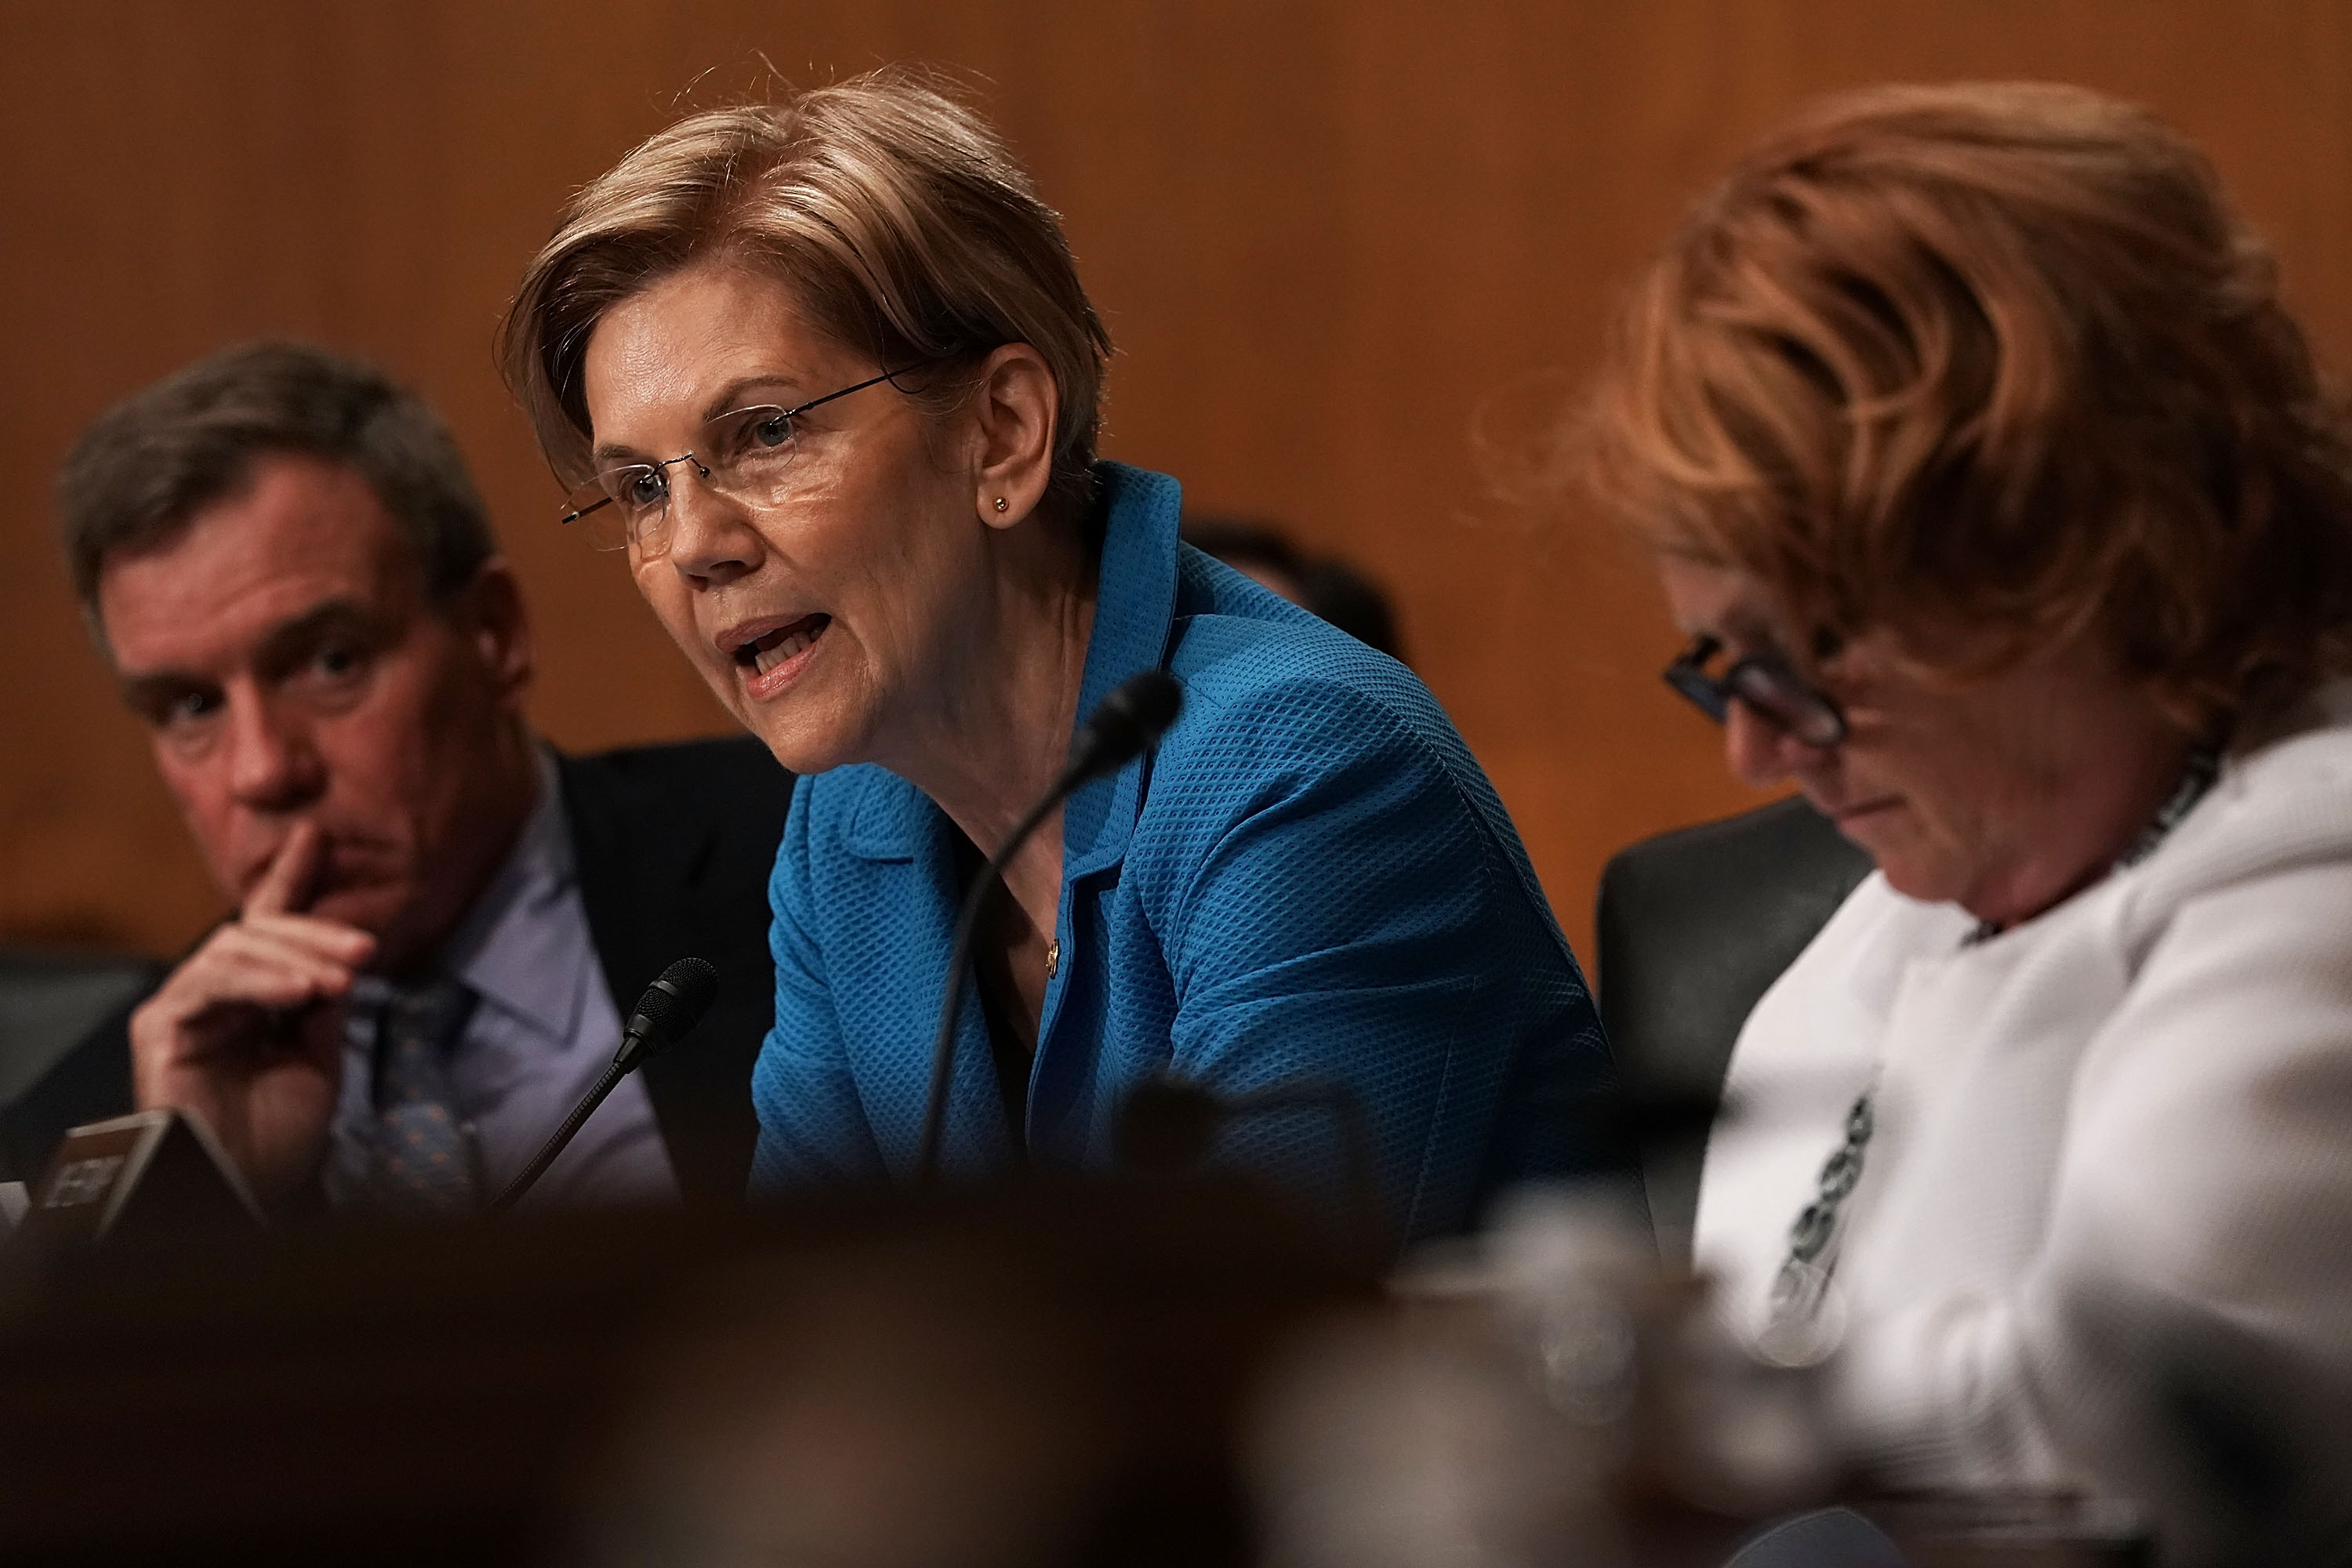 Elizabeth Warren confronts Trump nominee for her role in family separations